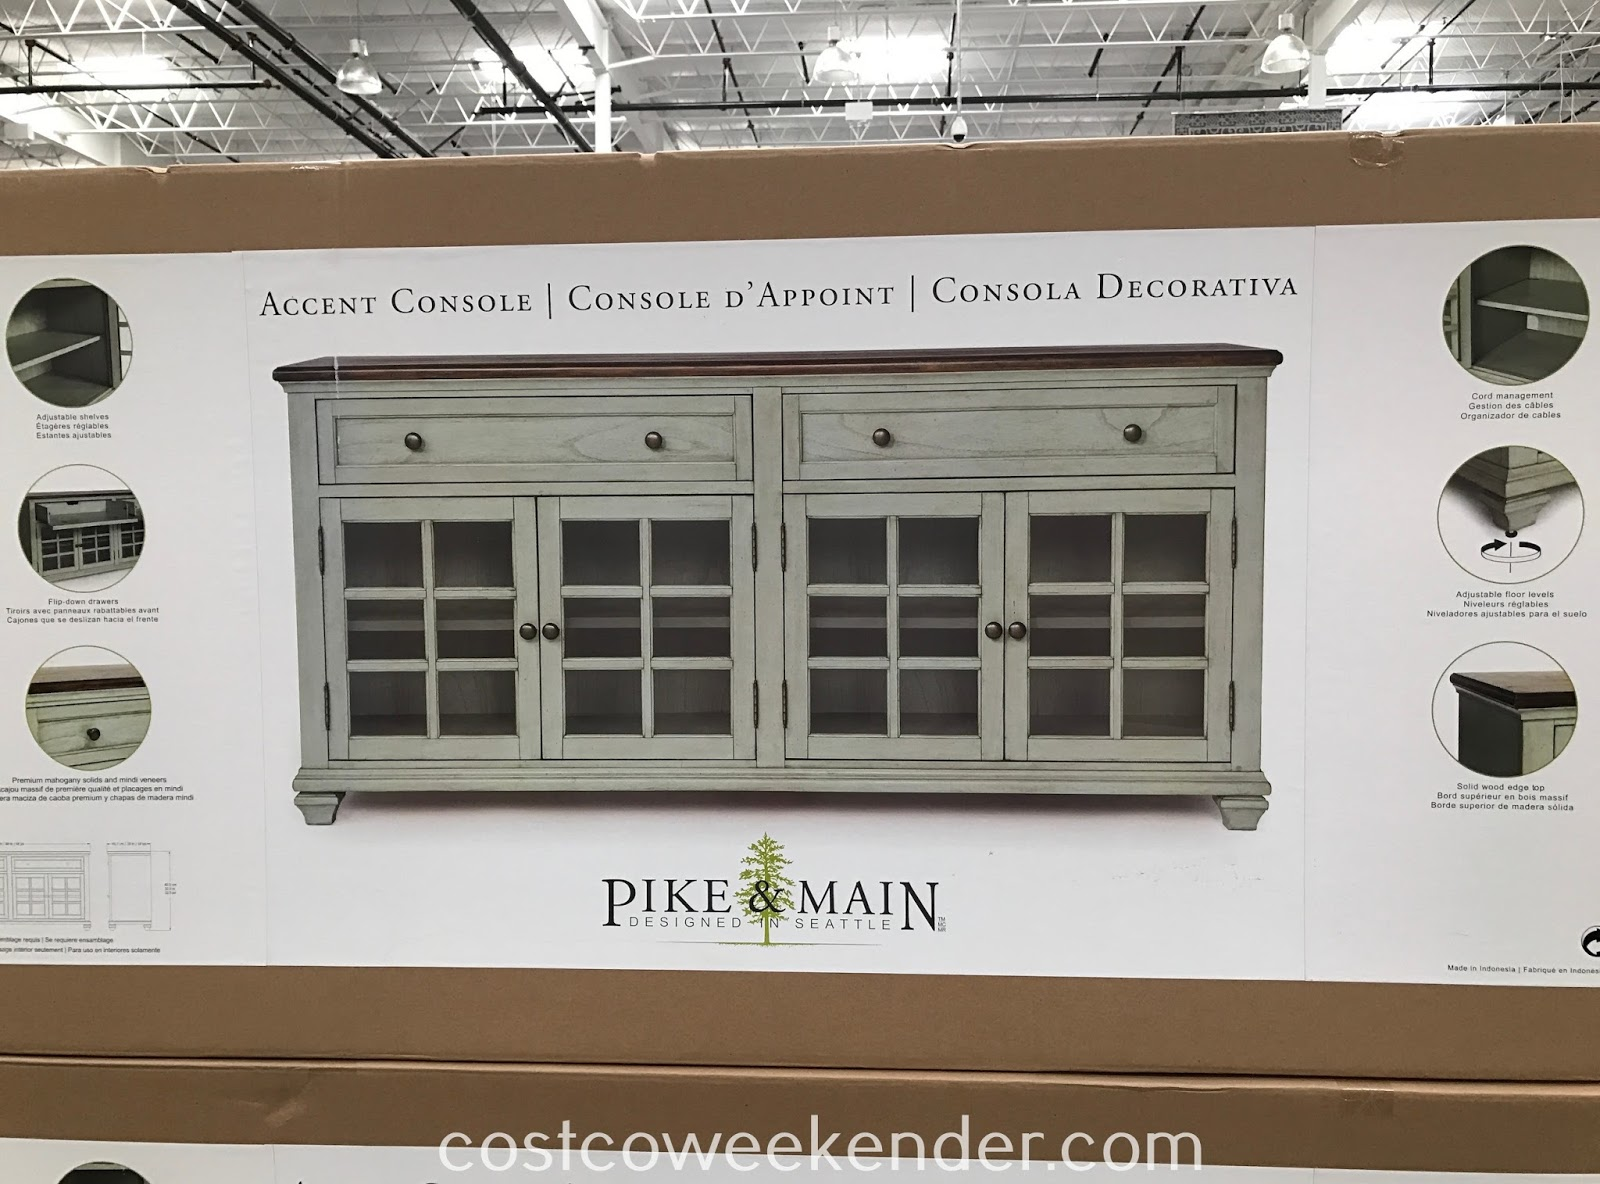 Costco 1041176 - Pike & Main Accent Console: great for any living room or family room